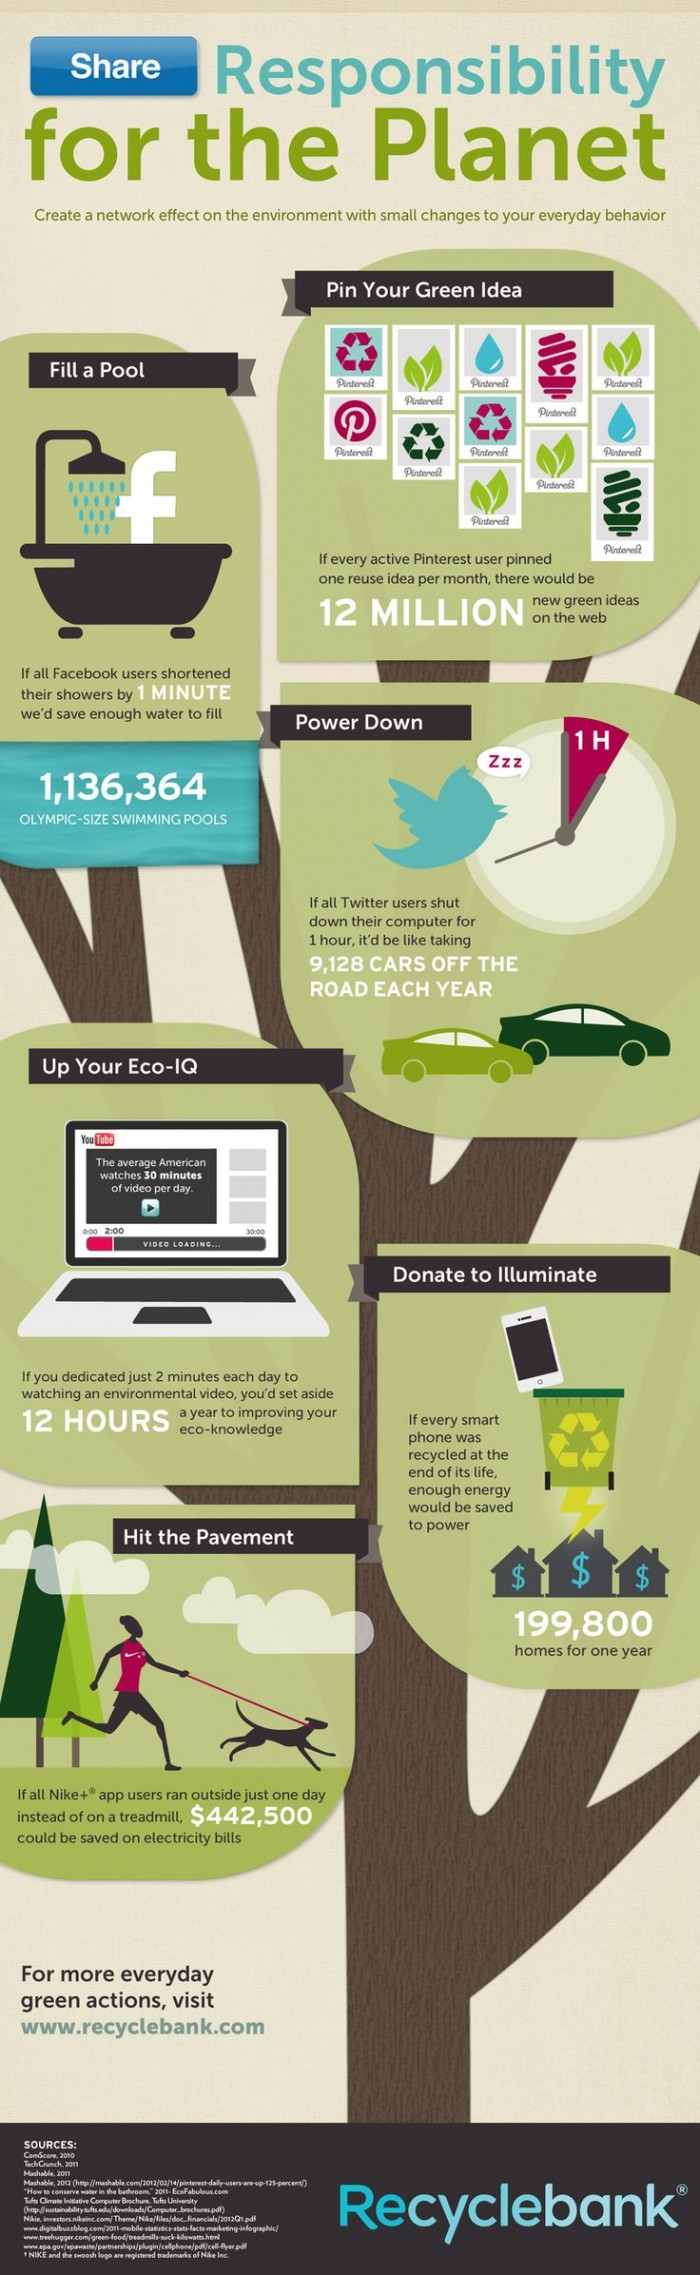 Share Responsibility For The Planet [infographic] [Infographic] | Daily Infographic